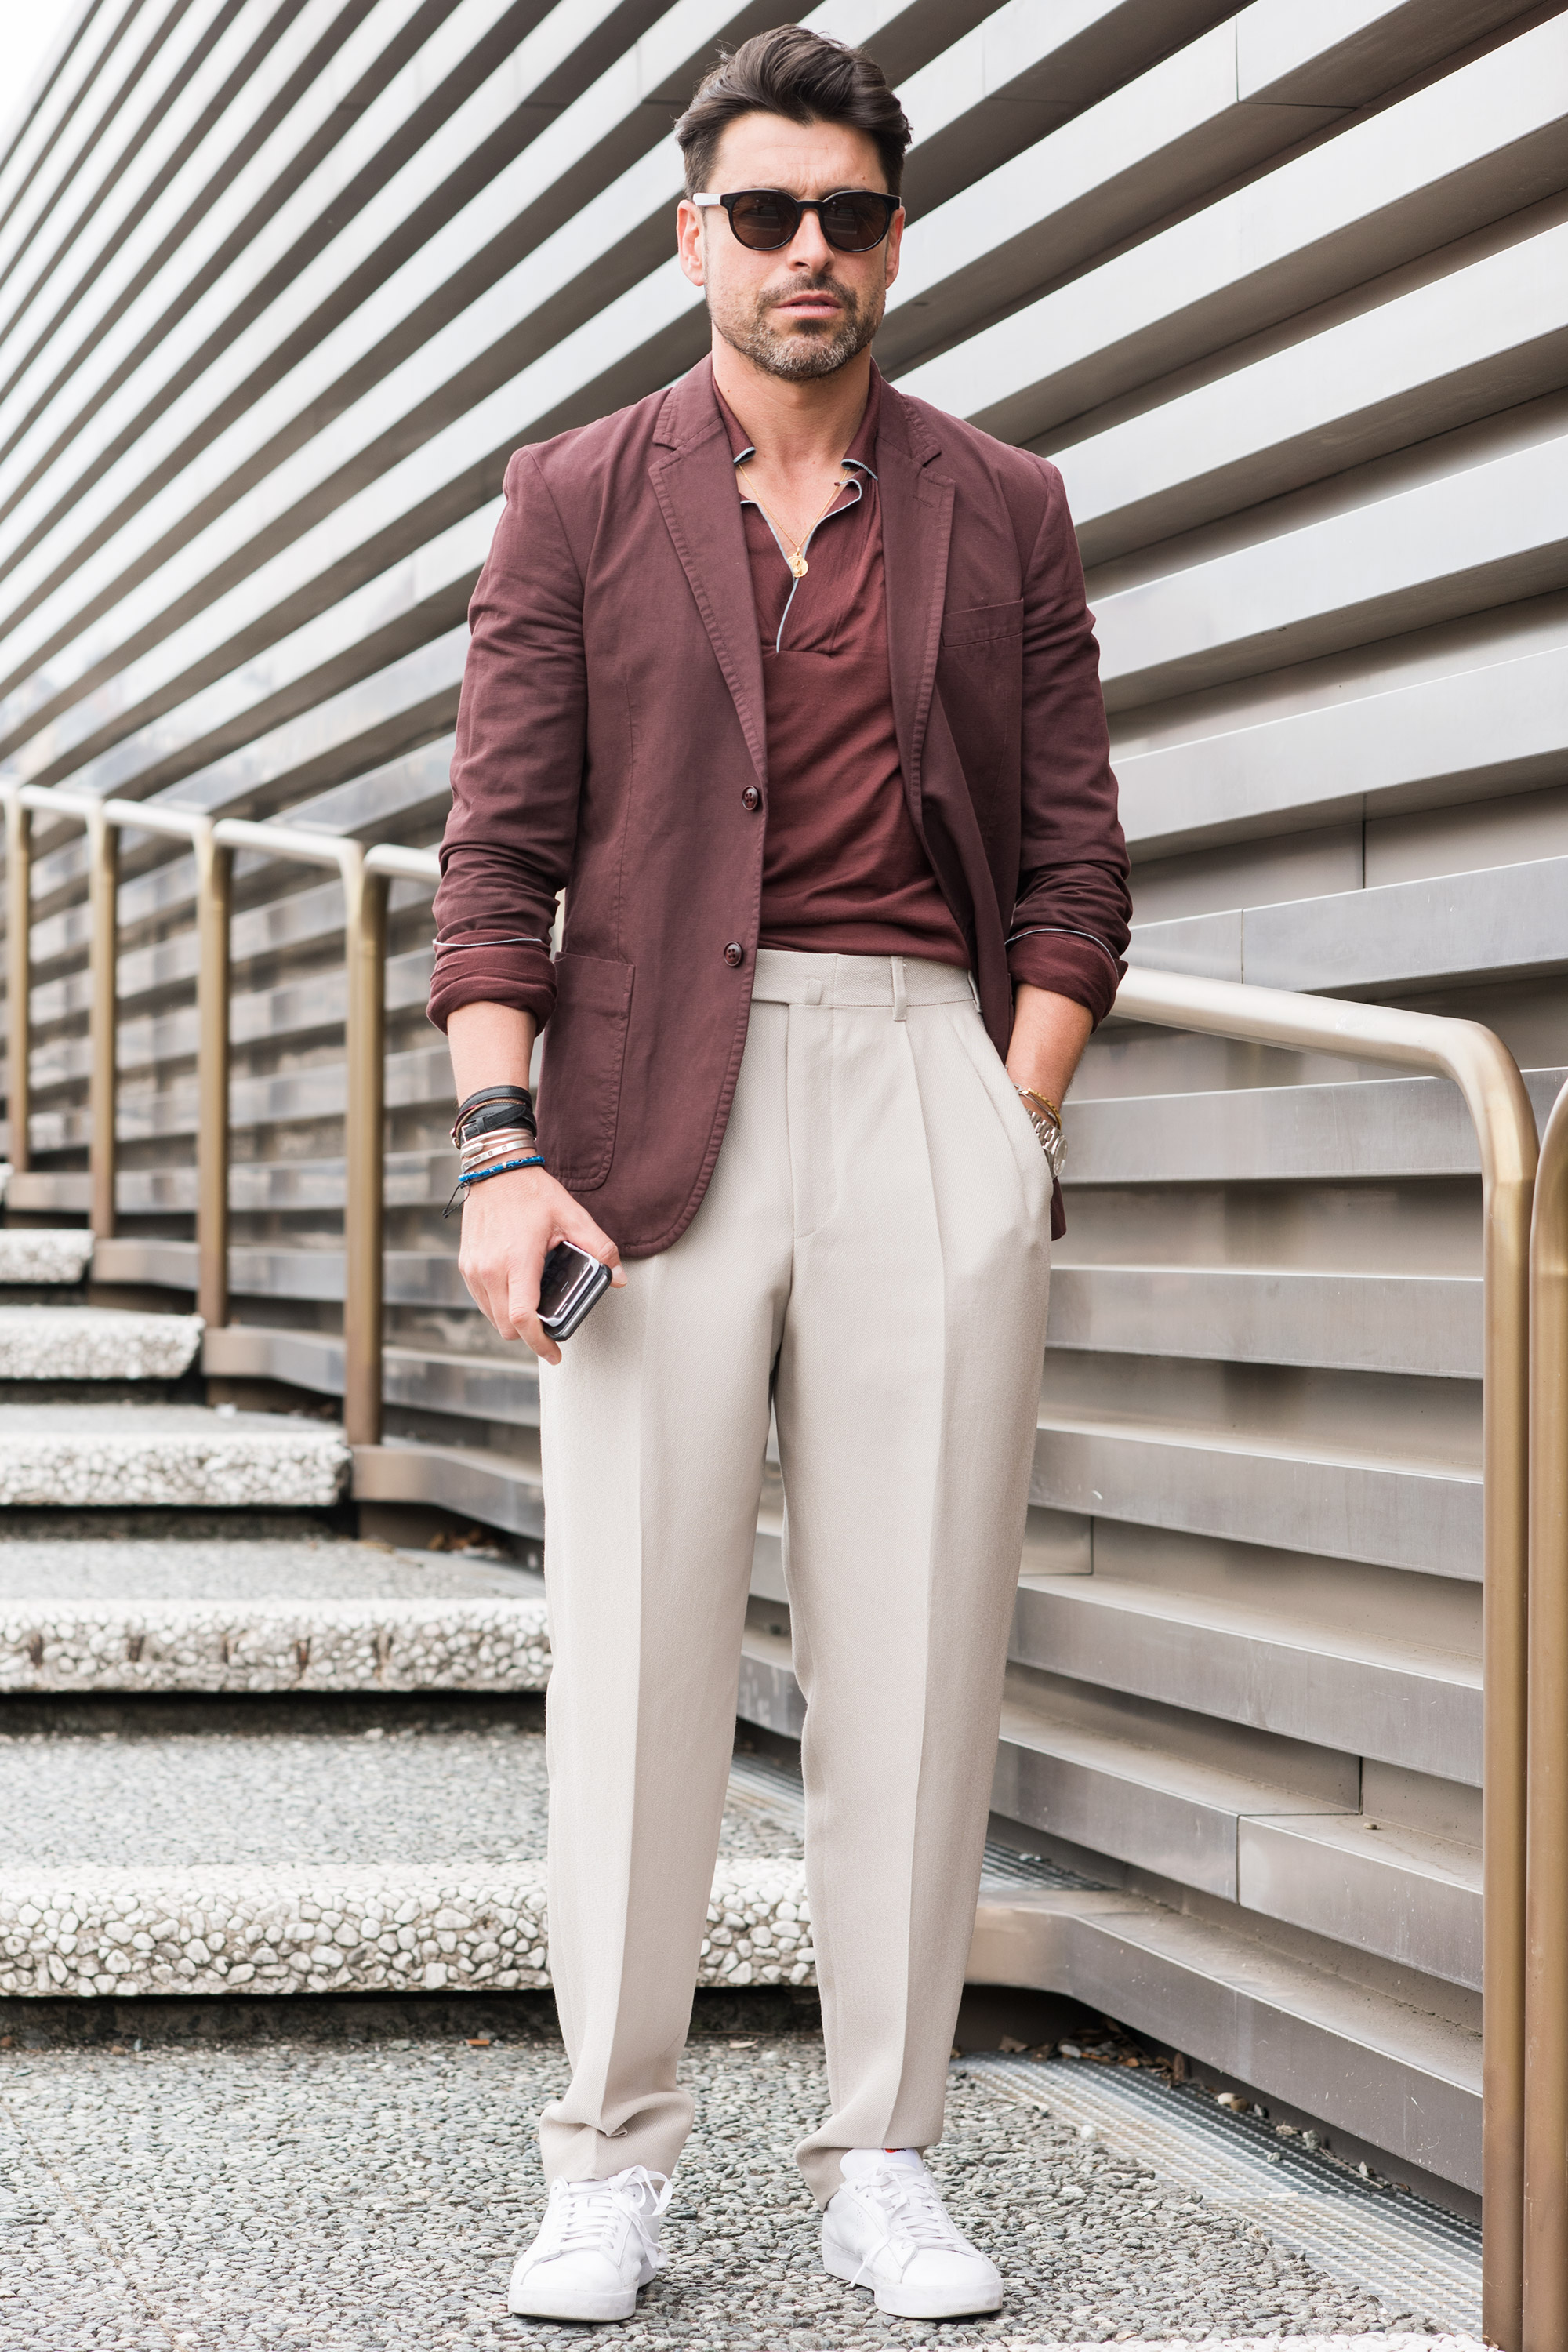 Alex Sunglasses: Paul Smith Blazer: Marc Jacobs Polo: Salvatore Ferragamo Pants: Zegna Couture Bracelets: Hermes and vintage Watch: Rolex Sneakers: Nike  Cheapest piece: My Nike Oldest piece: the bracelet  Inspiration: I was influenced by the Tuscany and the beautiful colors of hills.(我受了托斯卡纳和那些山丘的漂亮颜色的影响。)